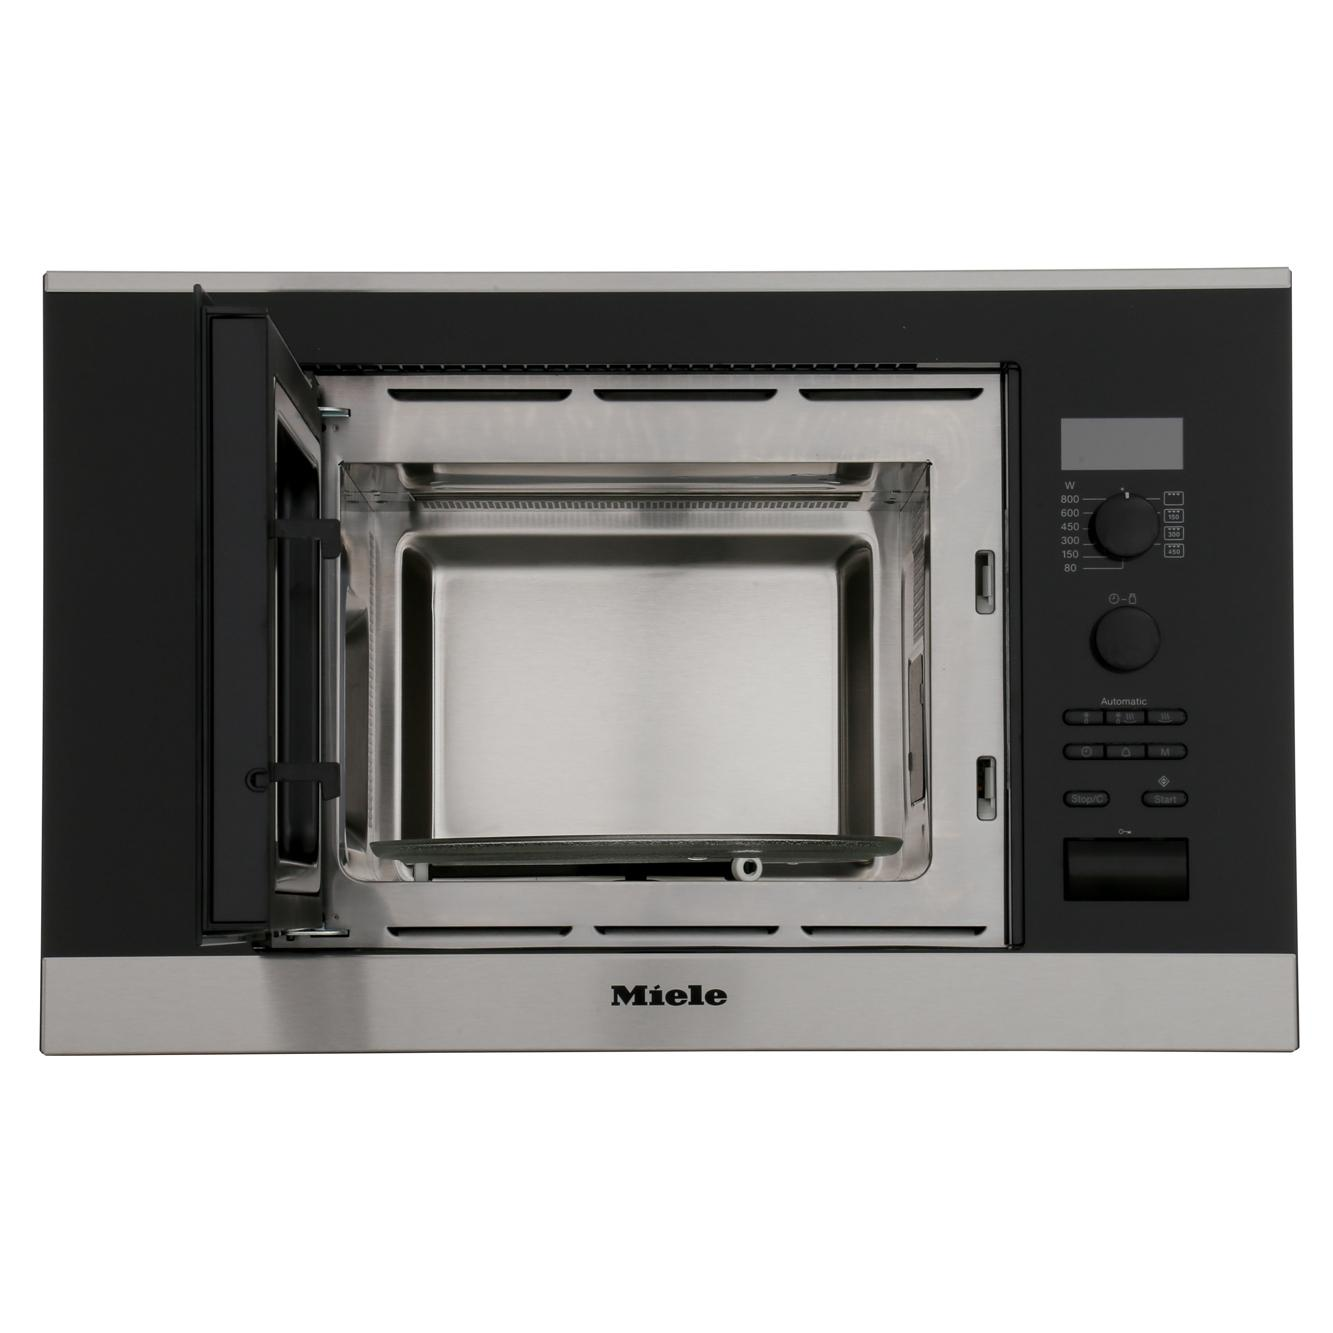 miele built in coffee maker instructions